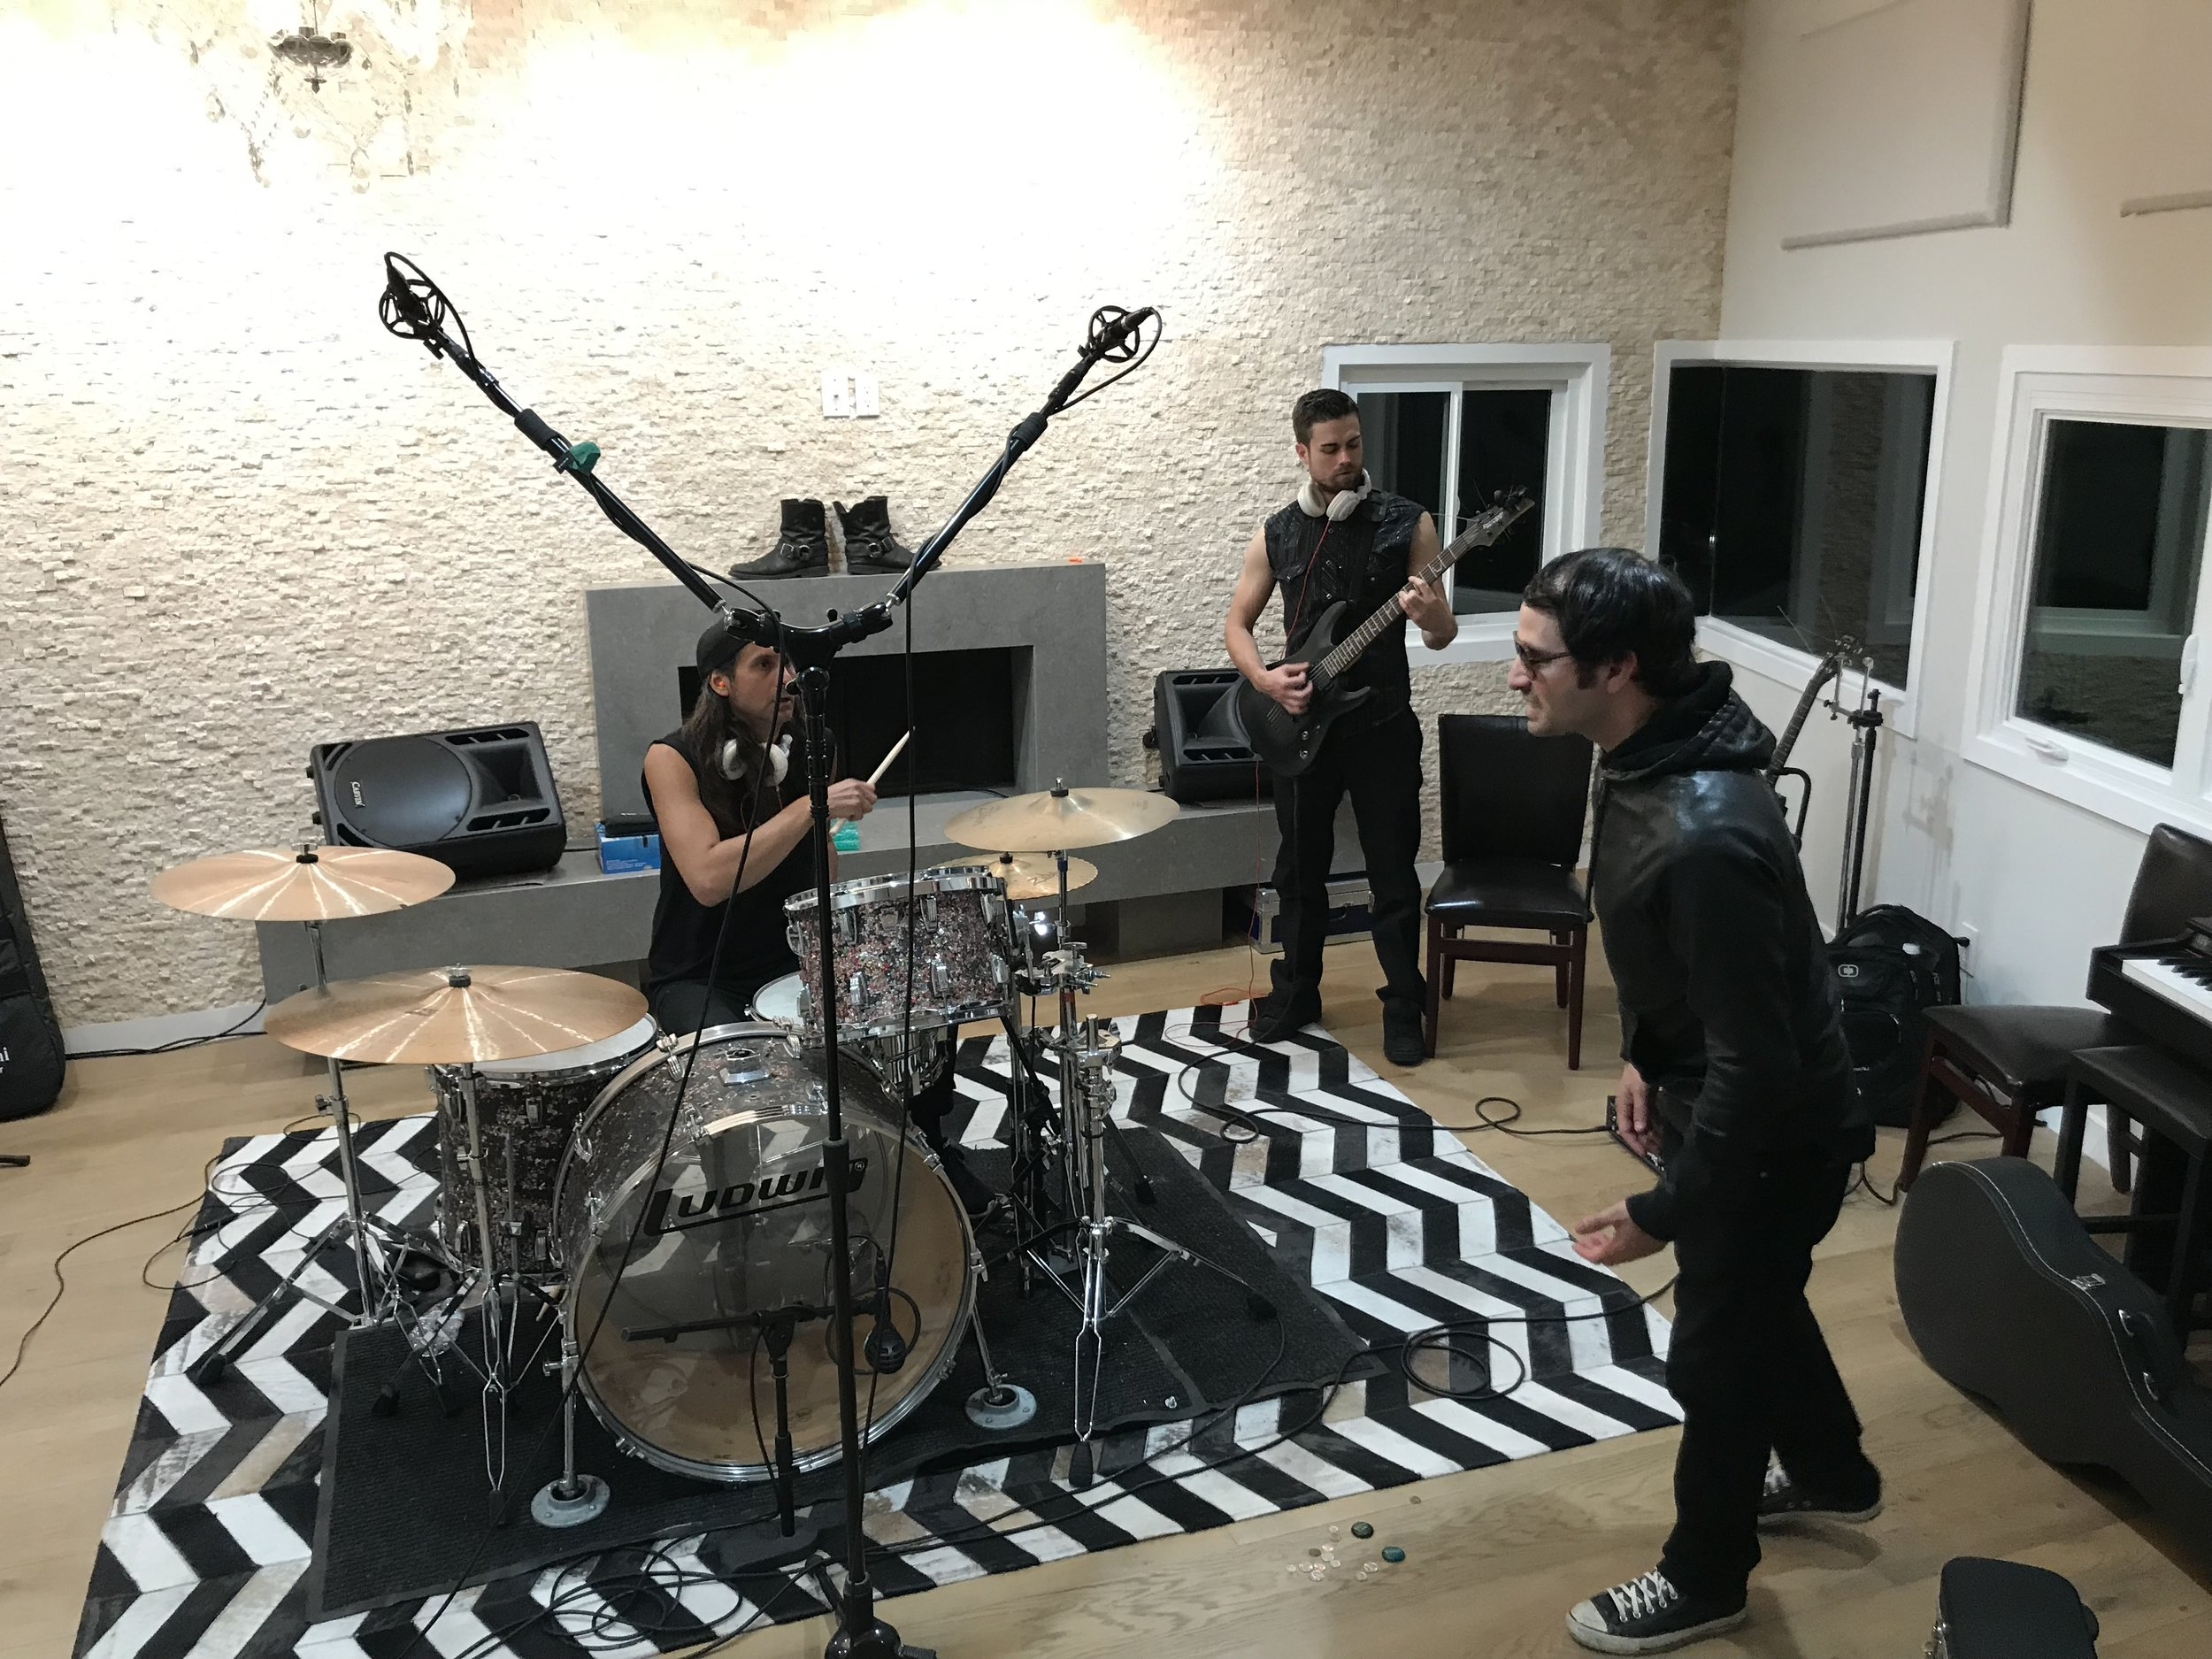 Blanck Records Live Room Rock Band.jpg